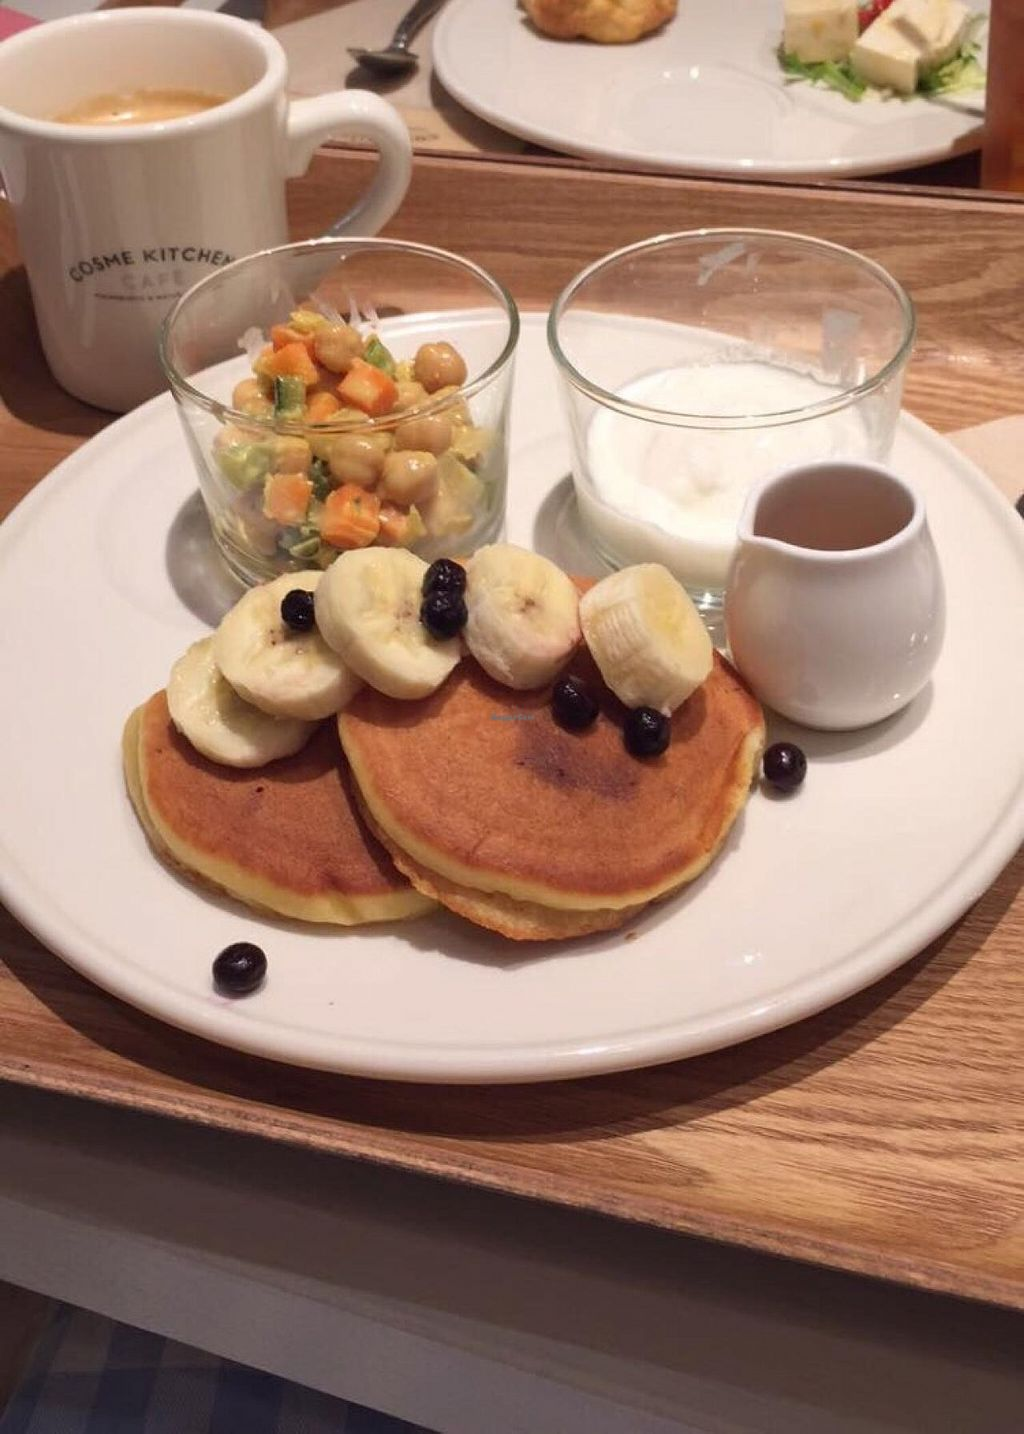 "Photo of Cosme Kitchen Cafe  by <a href=""/members/profile/oceallaig66"">oceallaig66</a> <br/>Breakfast set <br/> April 30, 2015  - <a href='/contact/abuse/image/53627/100784'>Report</a>"